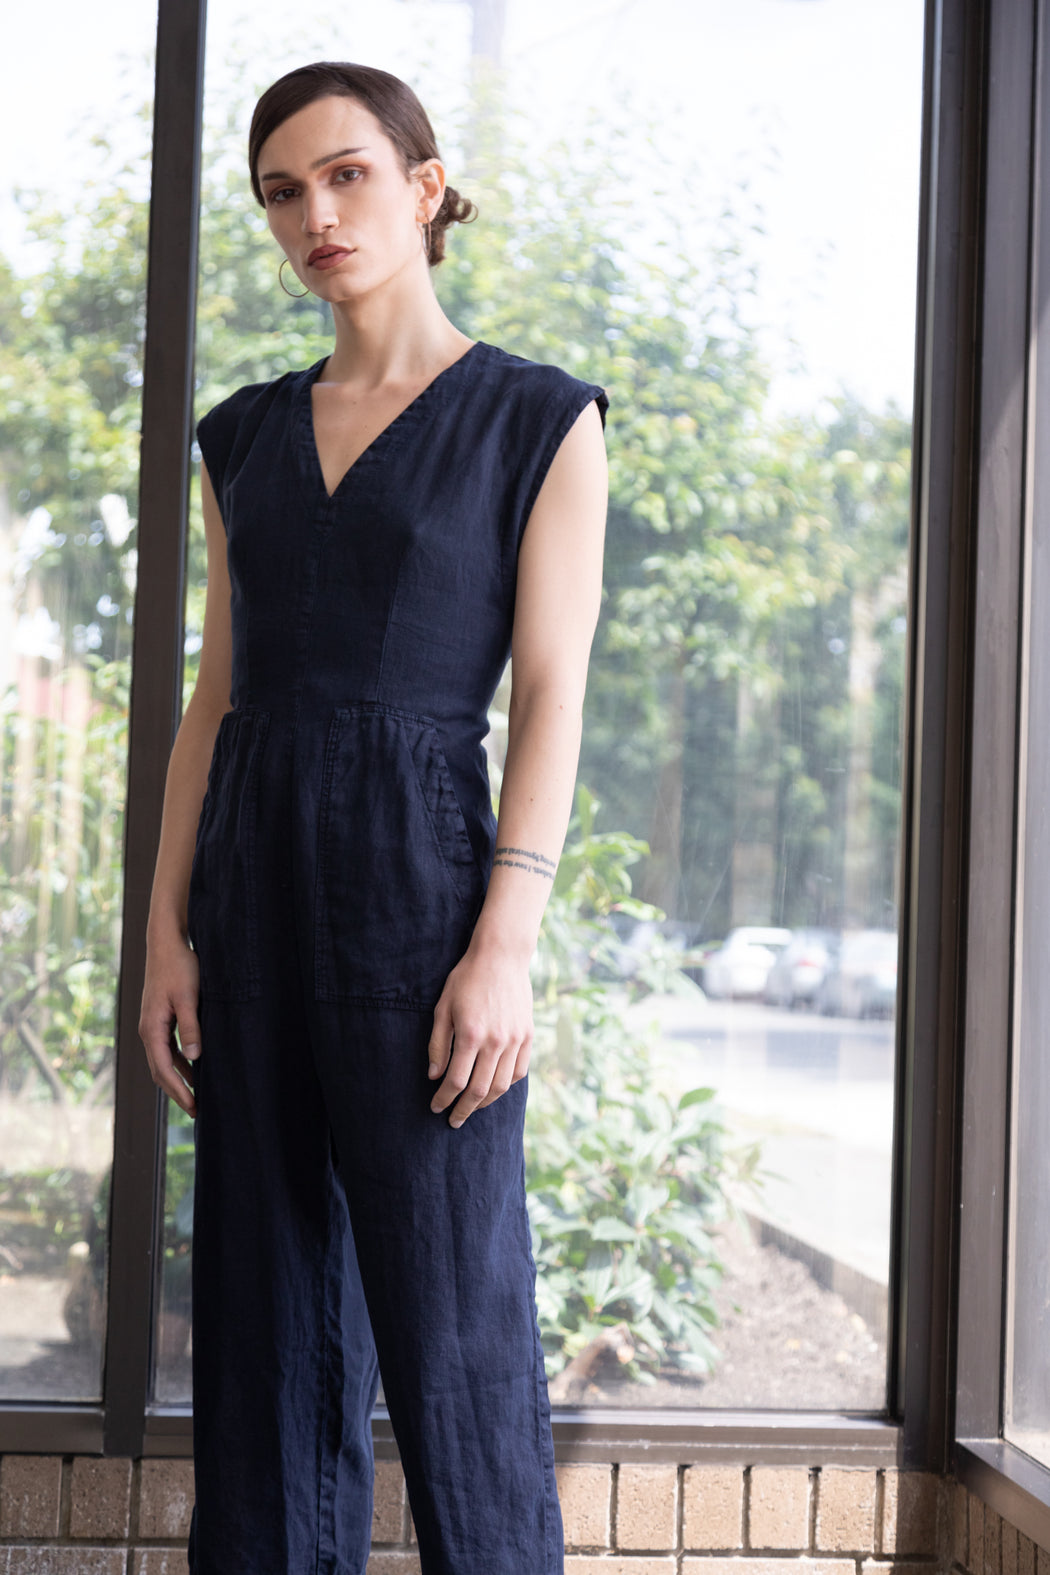 Photo of a dark blue linen jumpsuit with ties for adjustable wearing and sizing.